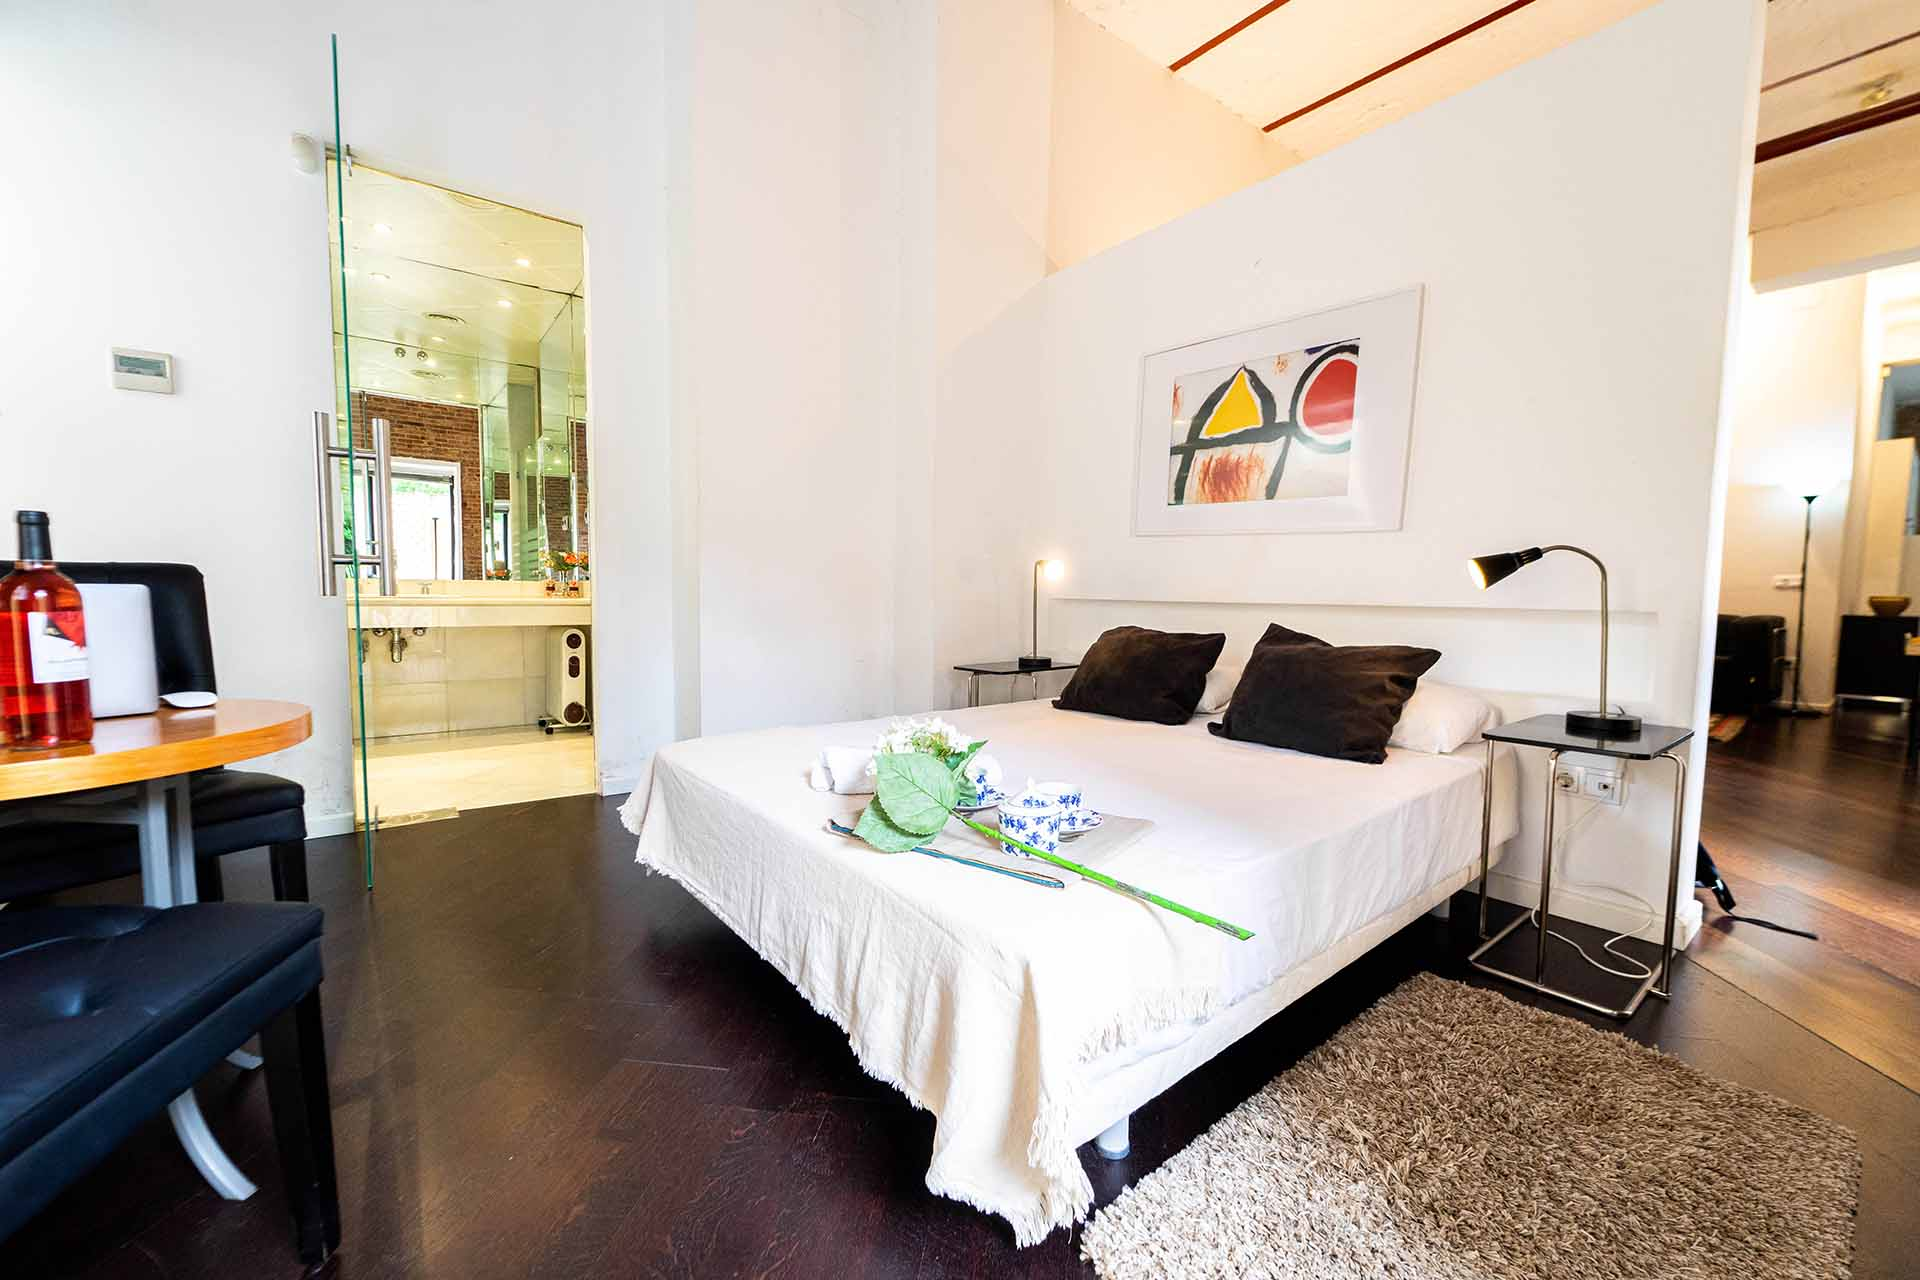 Purodreams is te easiest way to book a last-minute luxury homes. Last-minute lifestyle. In purodreams.com you can find design apartments and luxury villas, with last-minute deals. Relax is purodreams, no plans, no stress. Last-minute luxury homes managed by professionals.